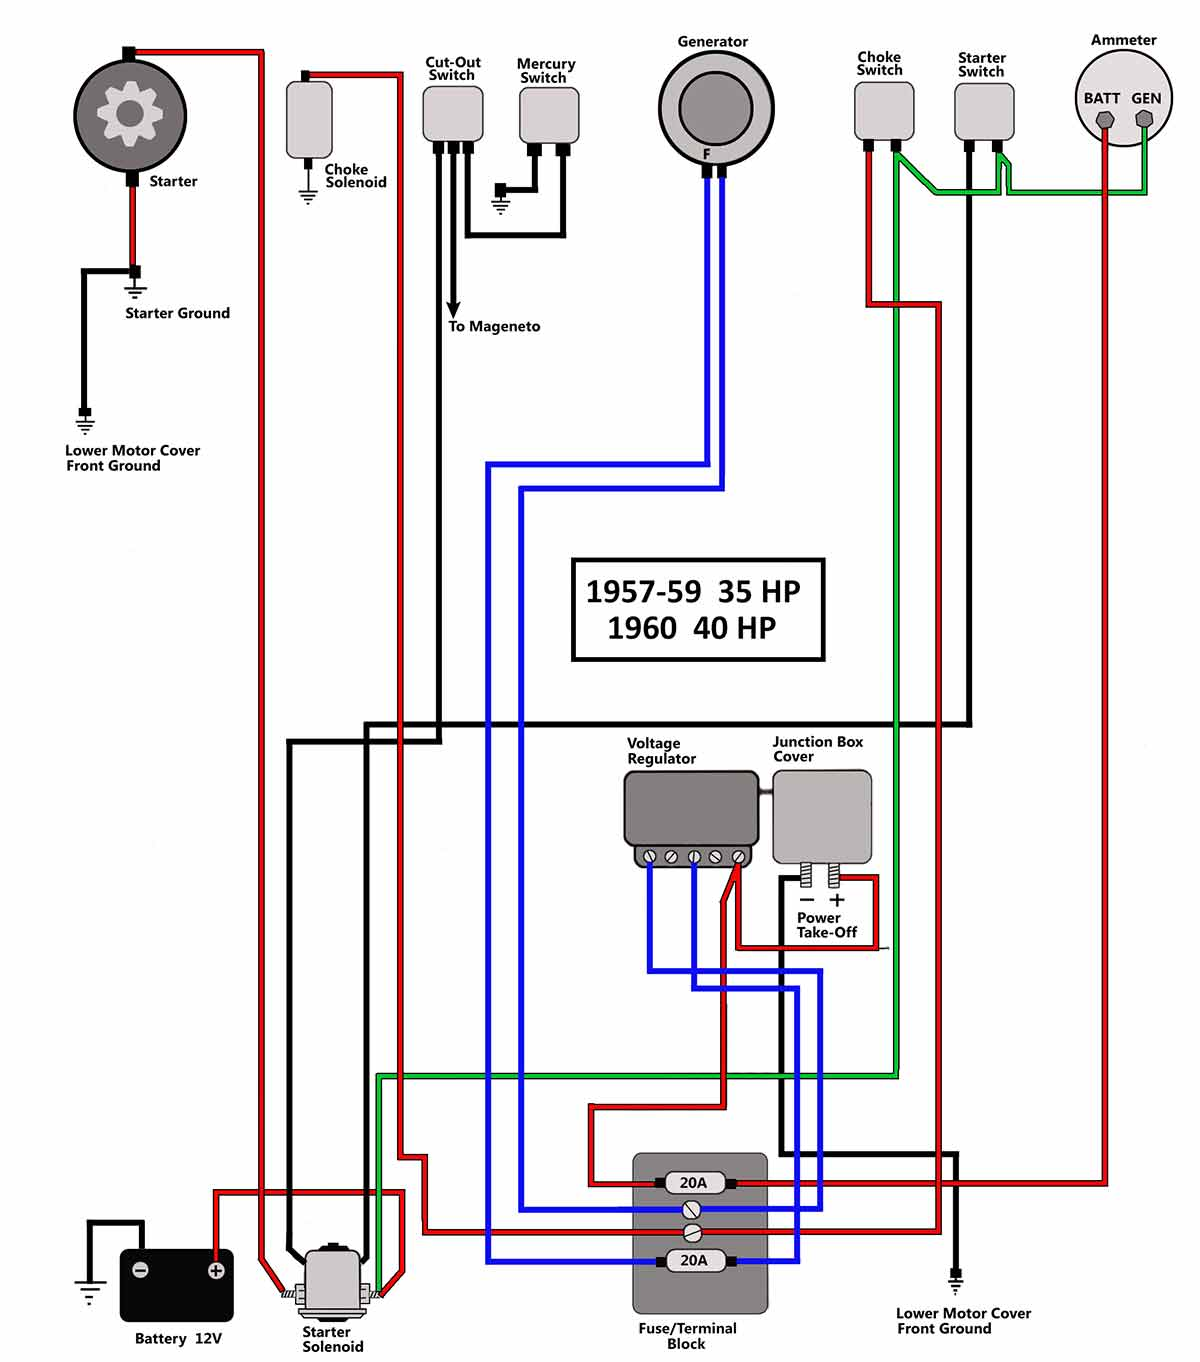 1957 60_35 40 help with wiring ignition and connecting battery to 1973 40hp wiring diagram for johnson outboard motor at mifinder.co